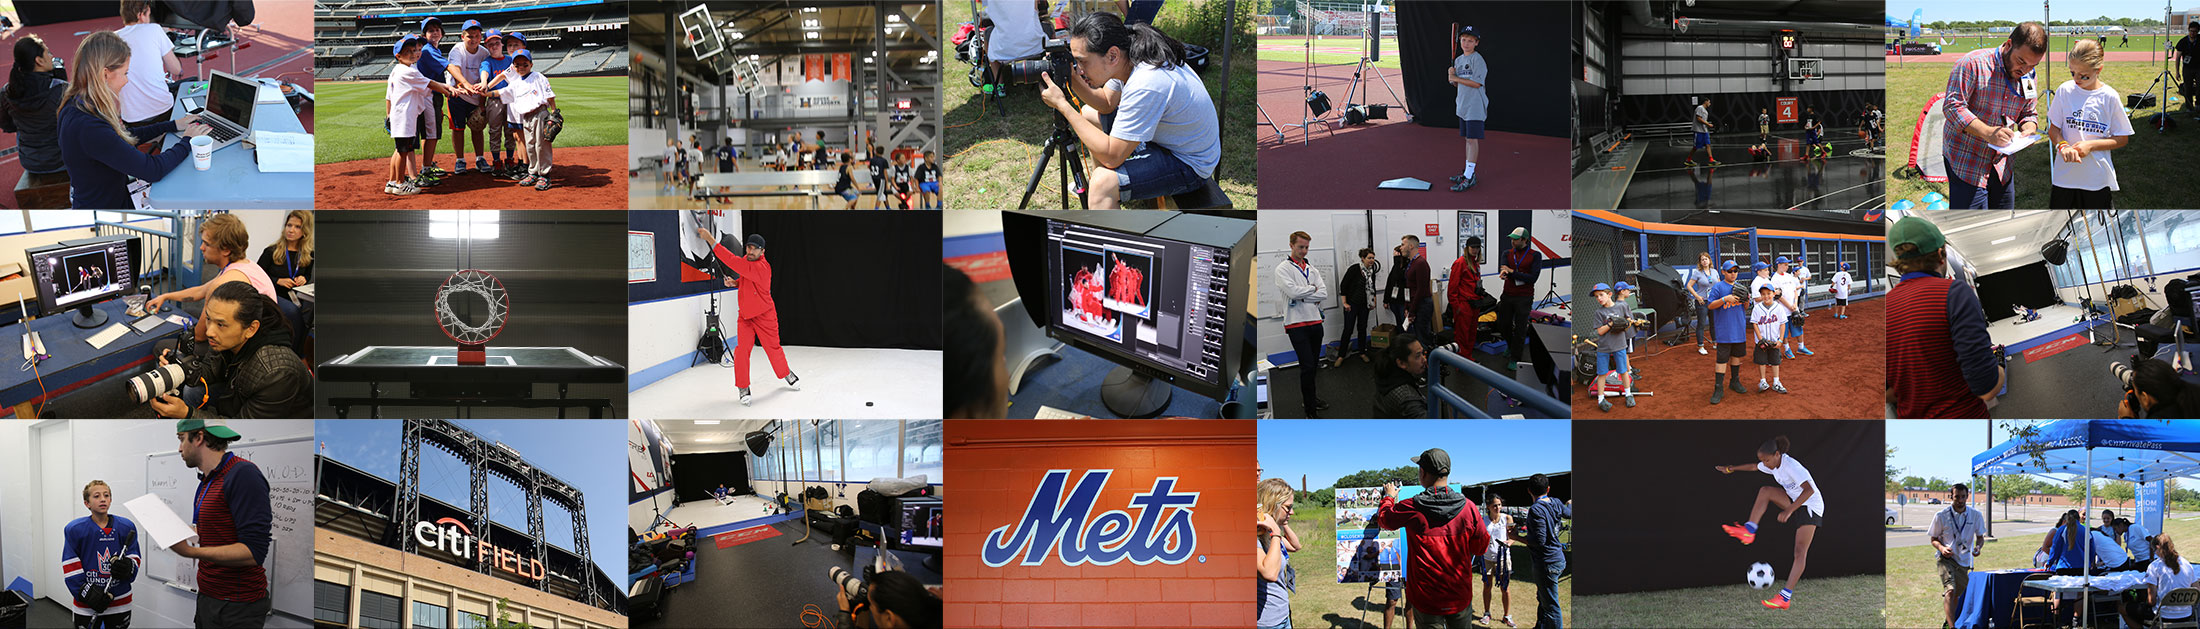 citiprocamps_BTS_collage